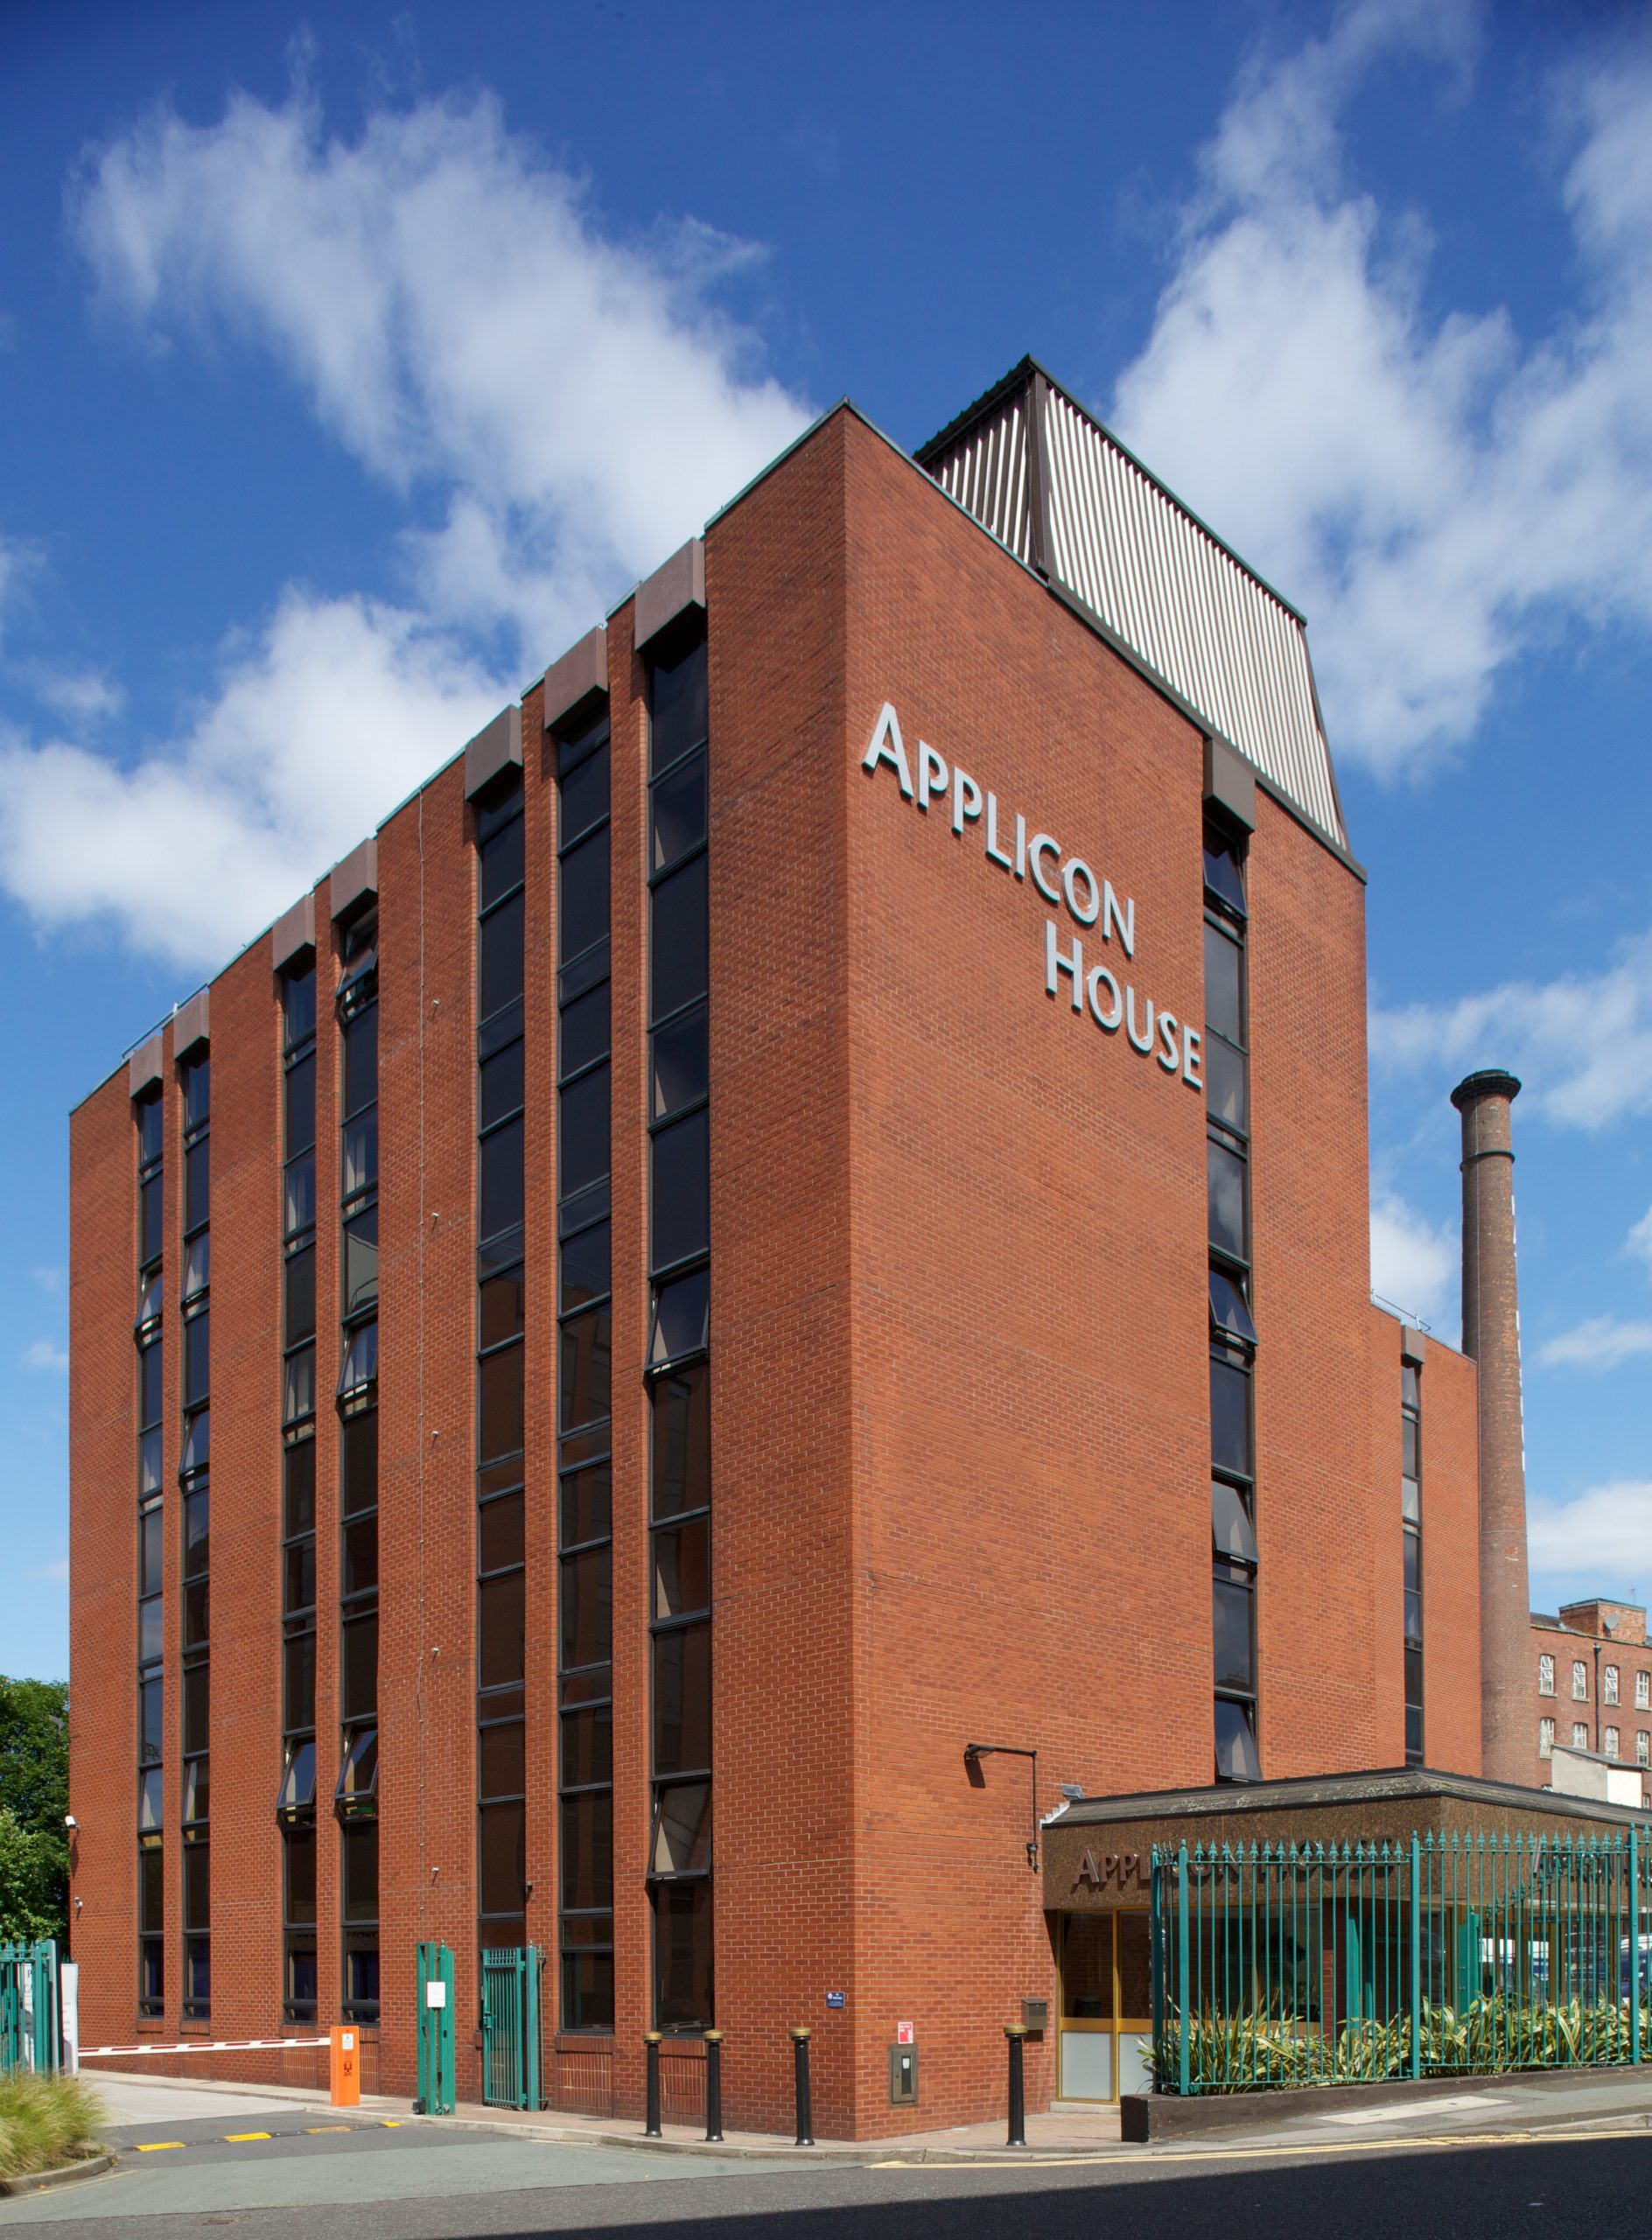 Rent office space in Stockport at Applicon House